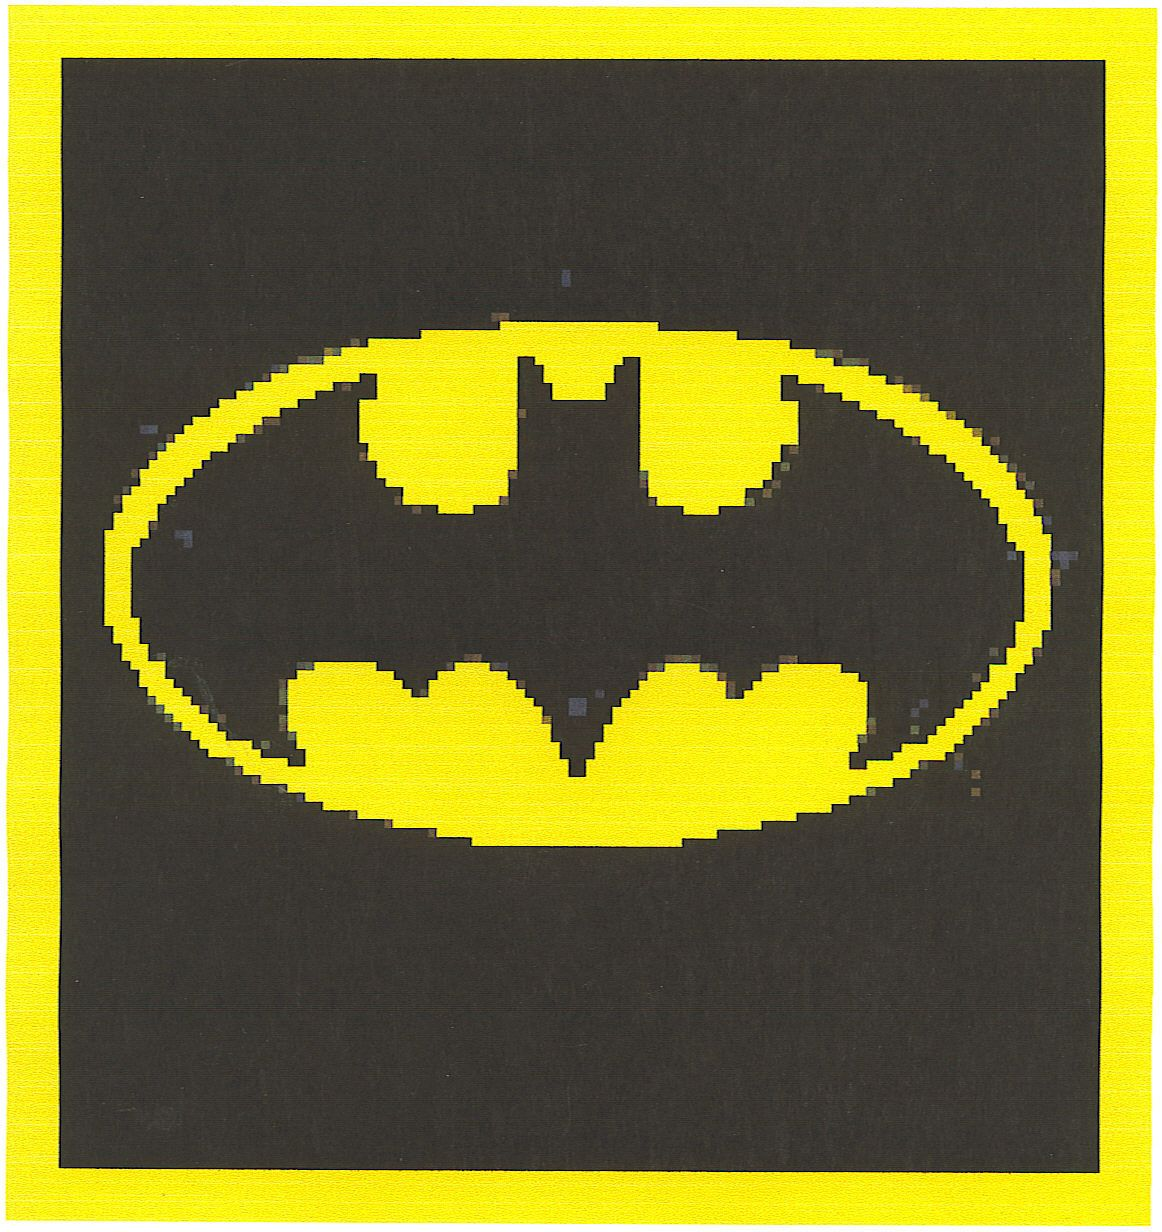 Batman Crochet Graph Afghan Pattern | Crochet Baby Afghan Patterns ...